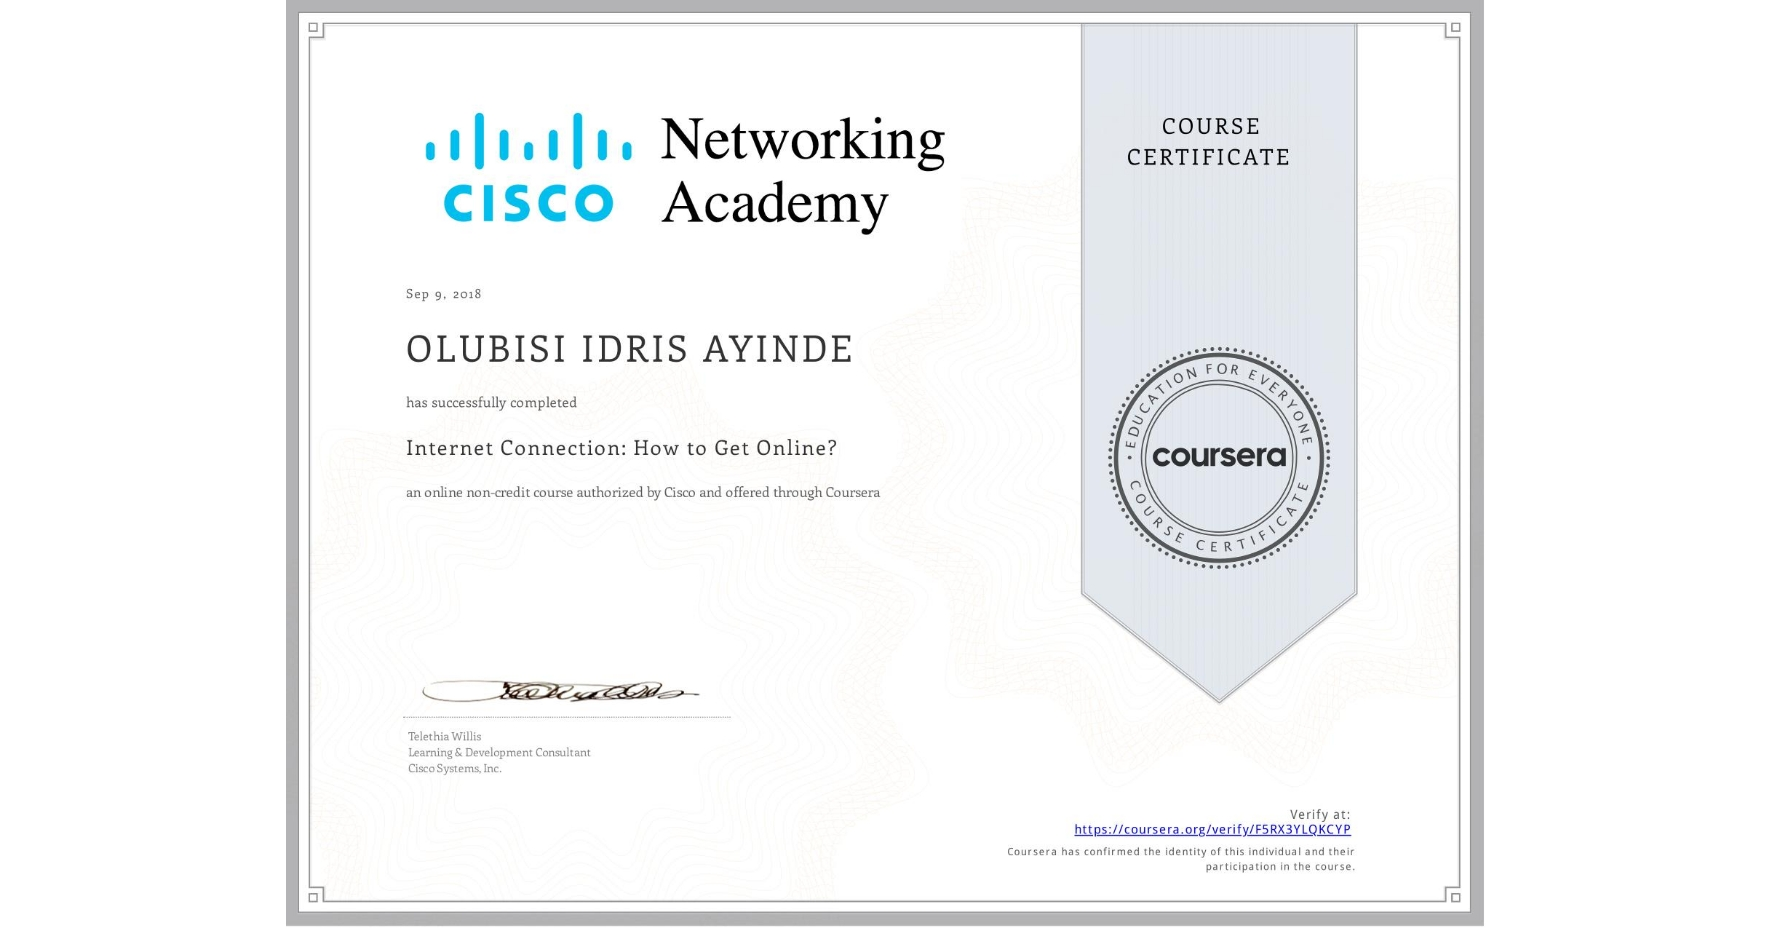 View certificate for OLUBISI IDRIS AYINDE, Internet Connection: How to Get Online?, an online non-credit course authorized by Cisco and offered through Coursera